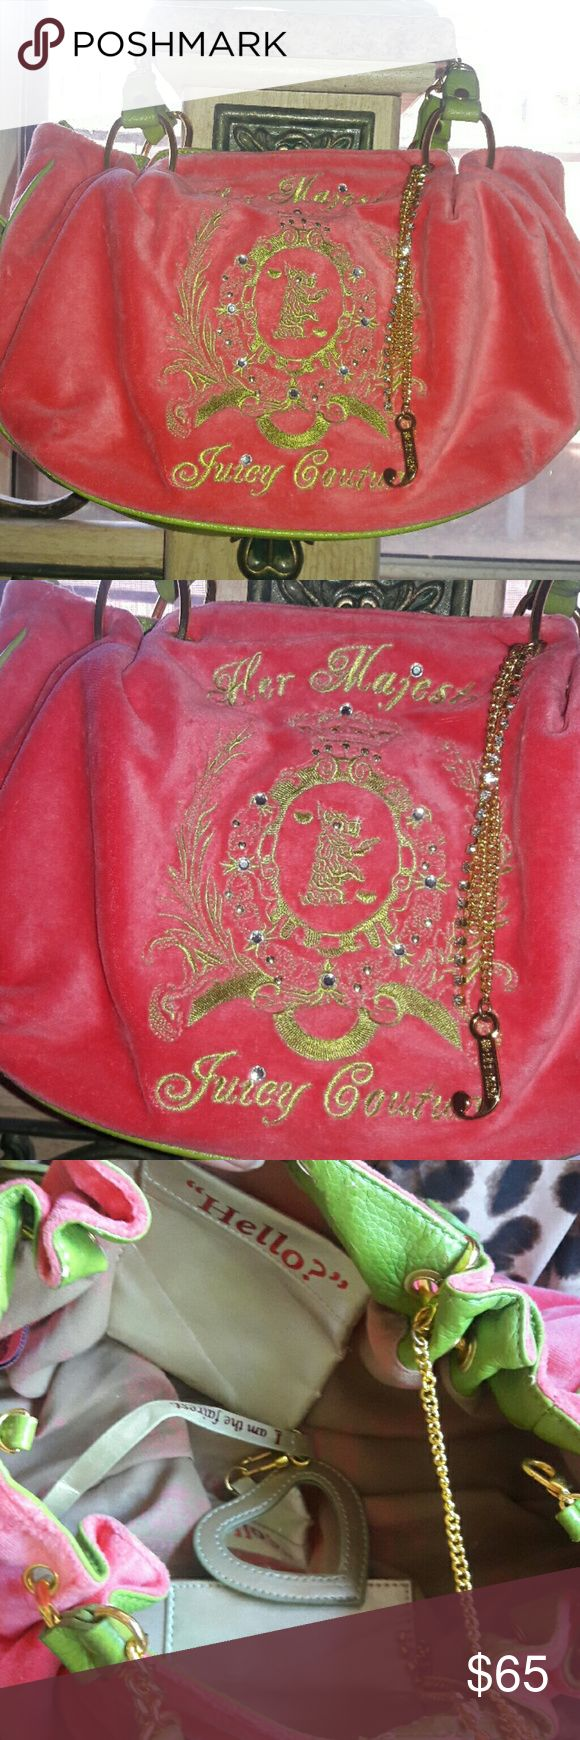 2 hr sale Small juicy couture rhinestone purse Great condition just leather inside is peeling very cute juicy purse blinged out comes with mirror inside Juicy Couture Bags